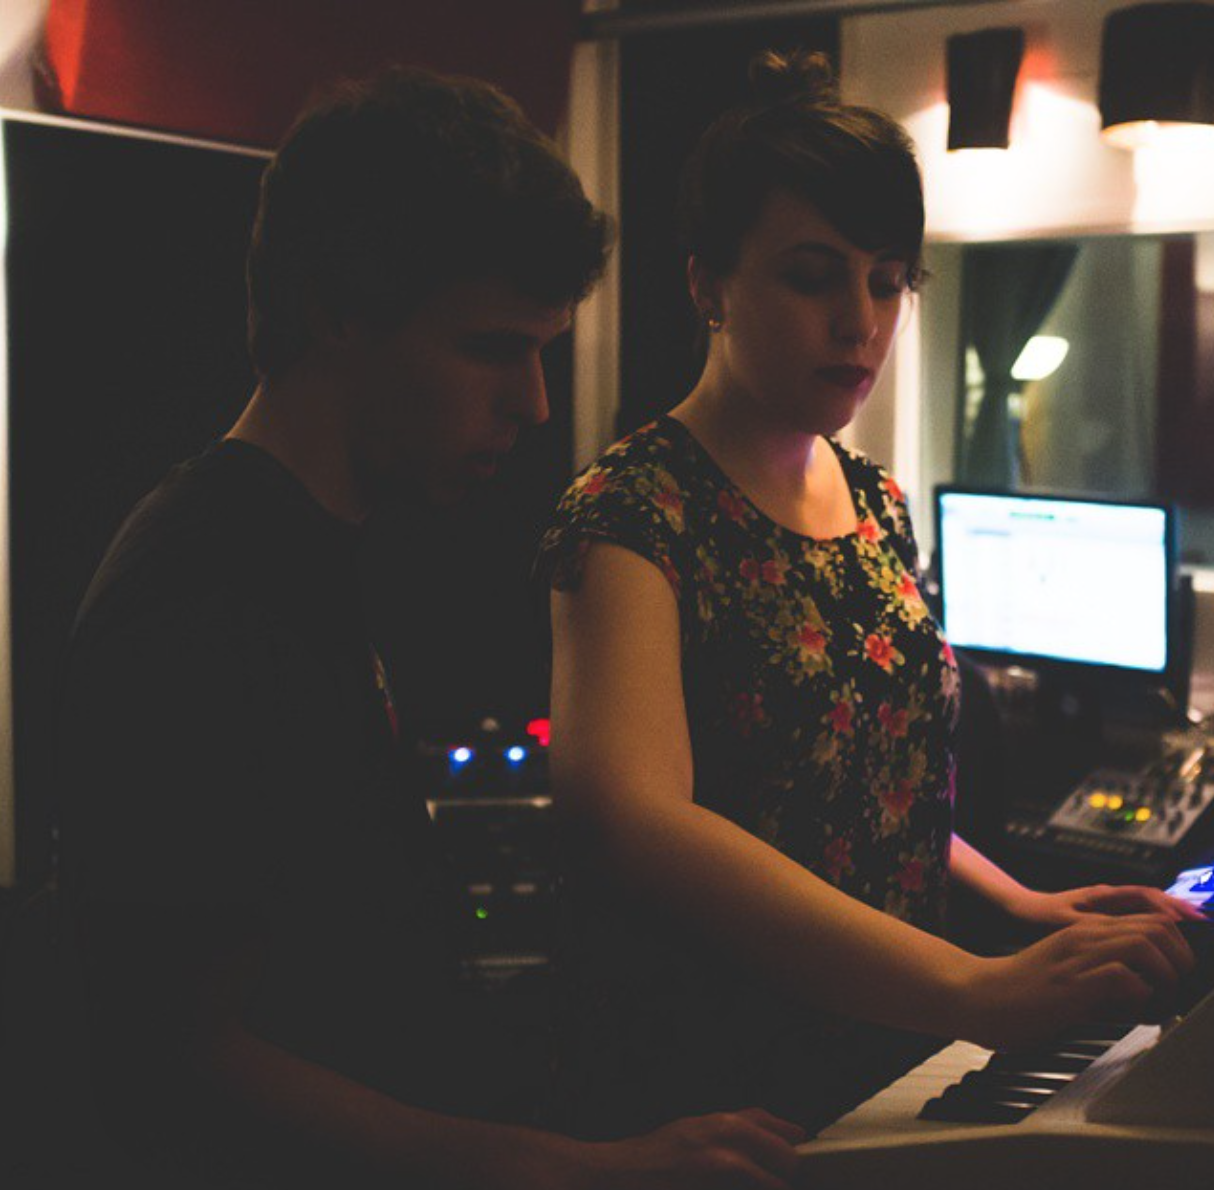 Greg and myself, playing the synth. Photo by Harley Small, my wonderful producer.